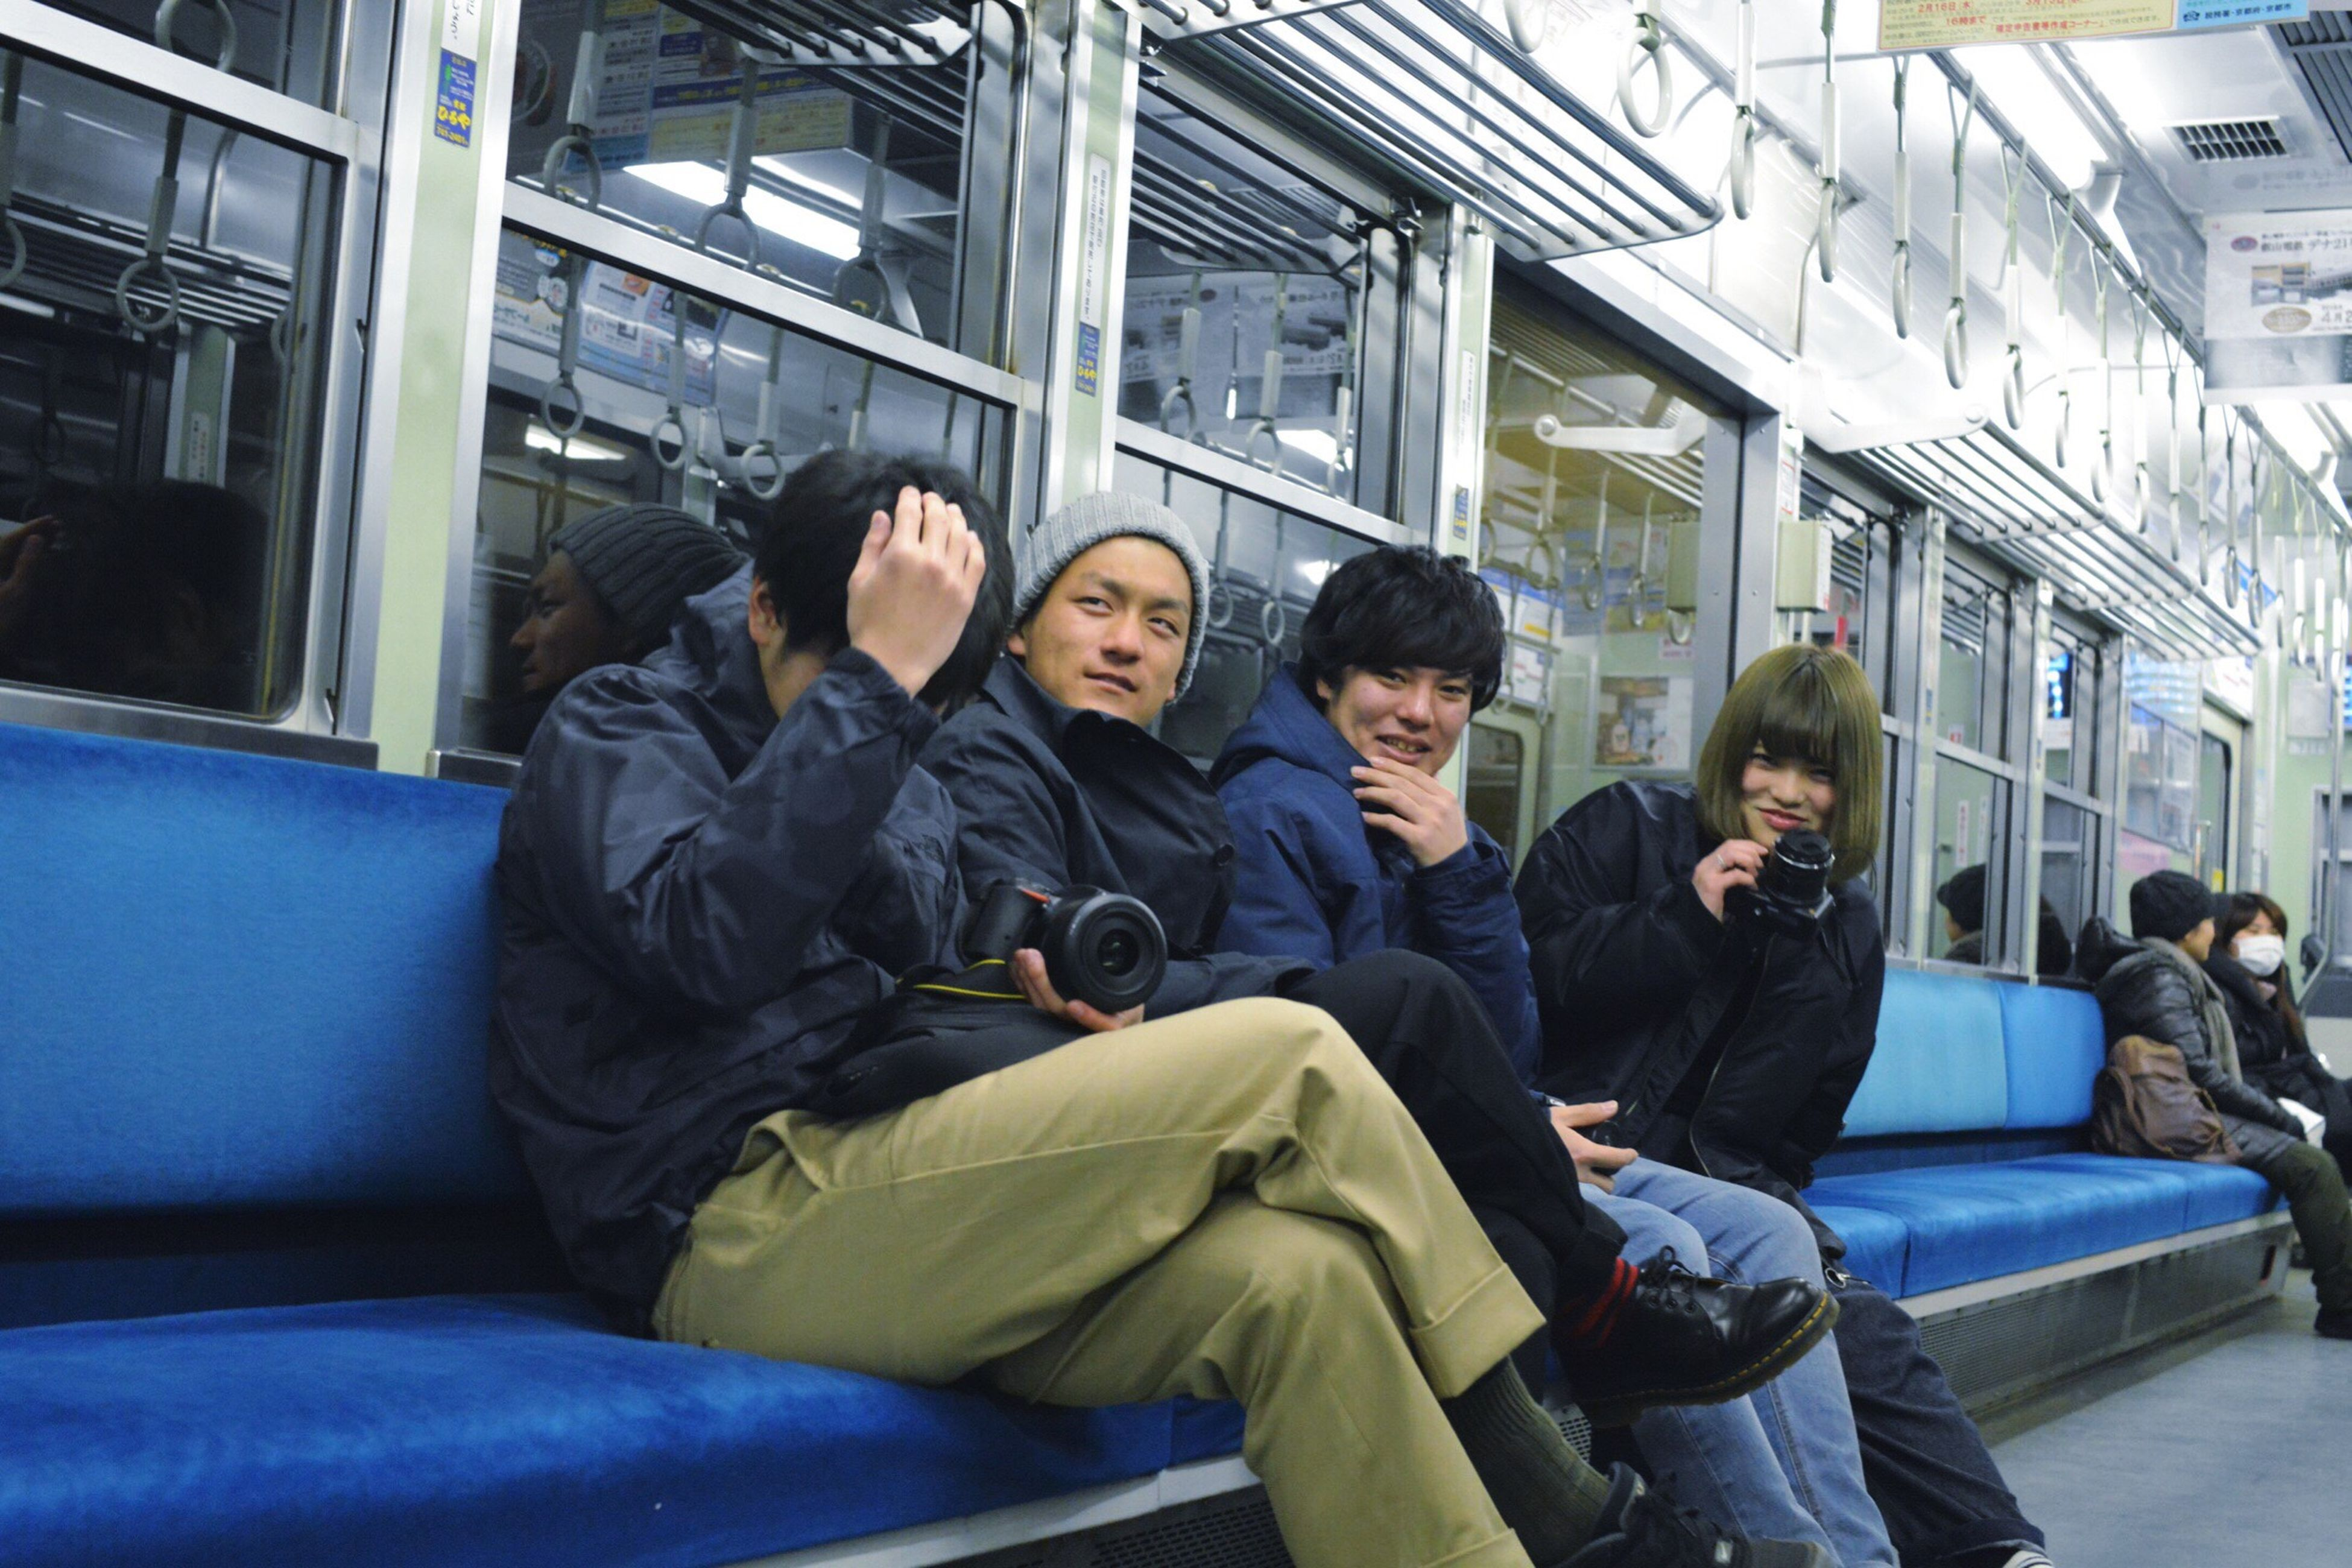 subway train, train - vehicle, indoors, travel, casual clothing, sitting, public transportation, adults only, people, adult, commuter, only men, men, human body part, young adult, day